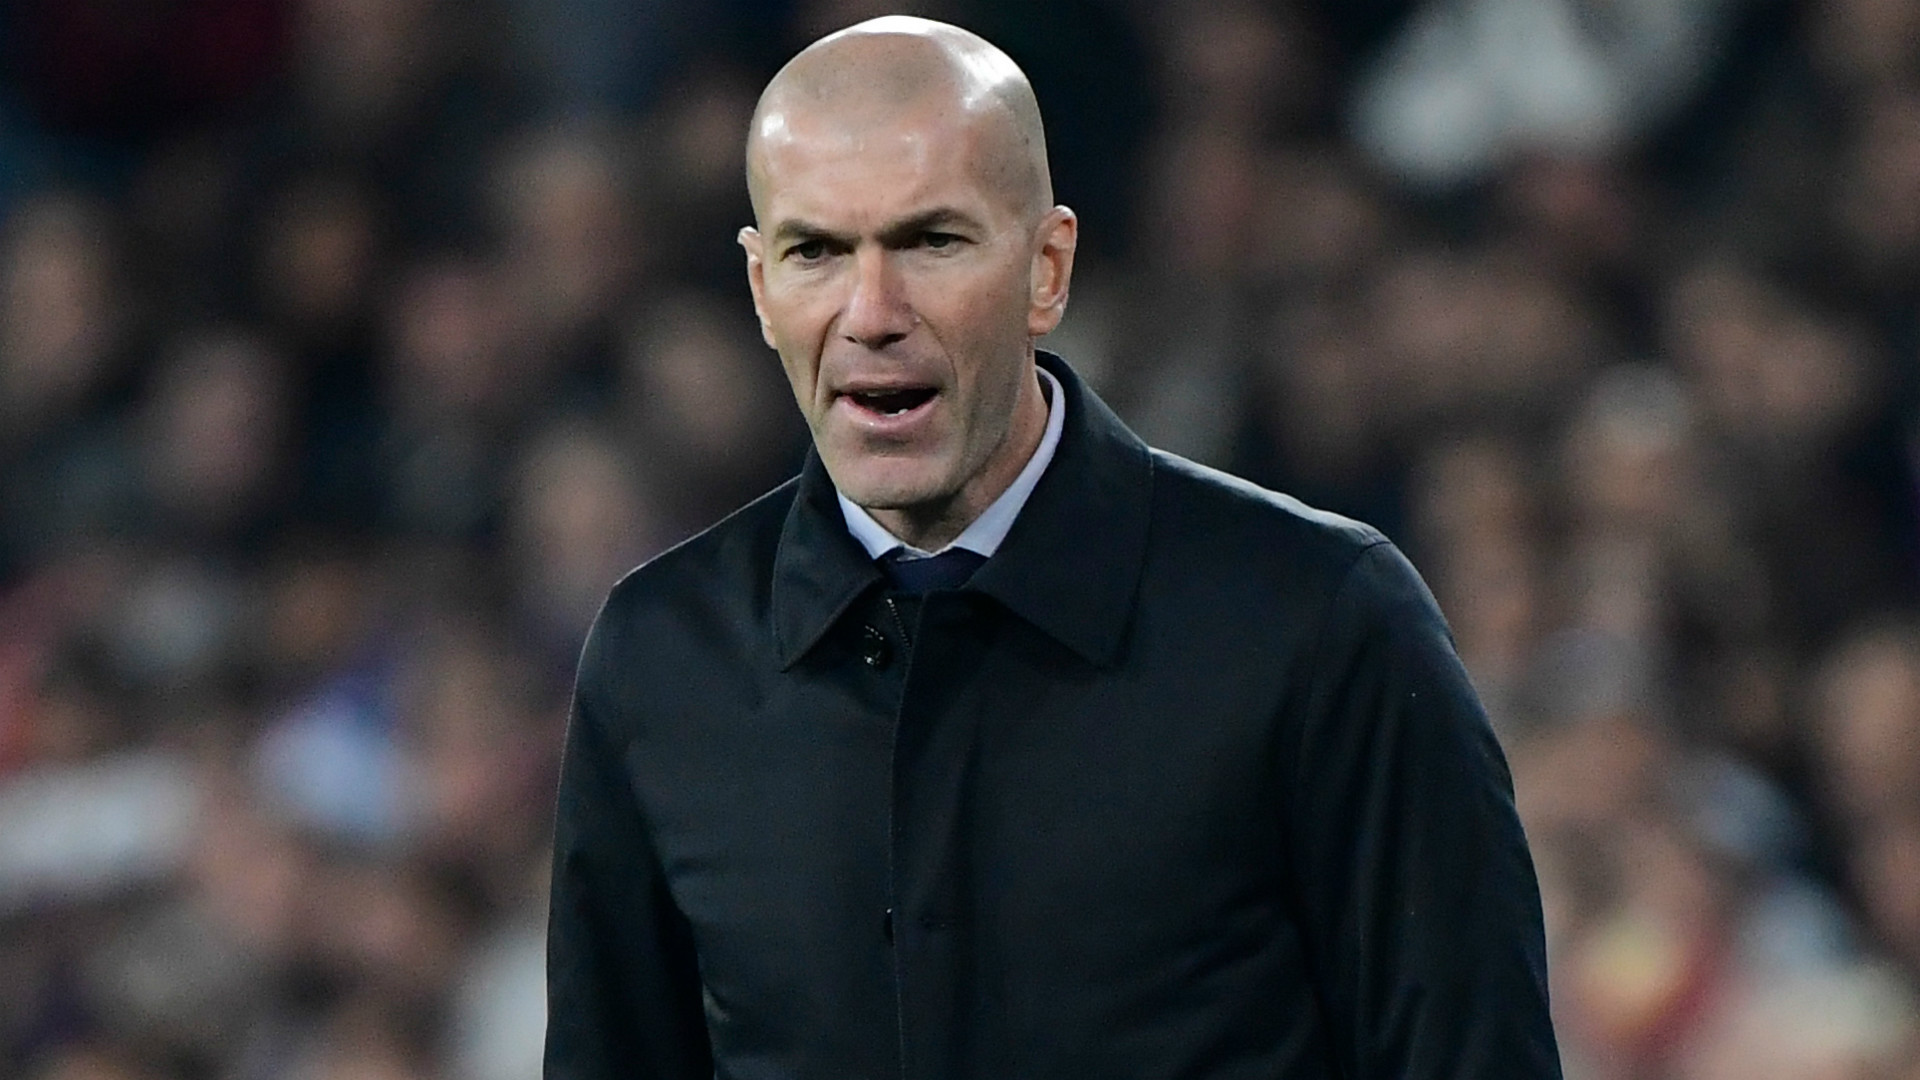 Zidane plays down Juventus talk but offers no guarantees on Real Madrid future